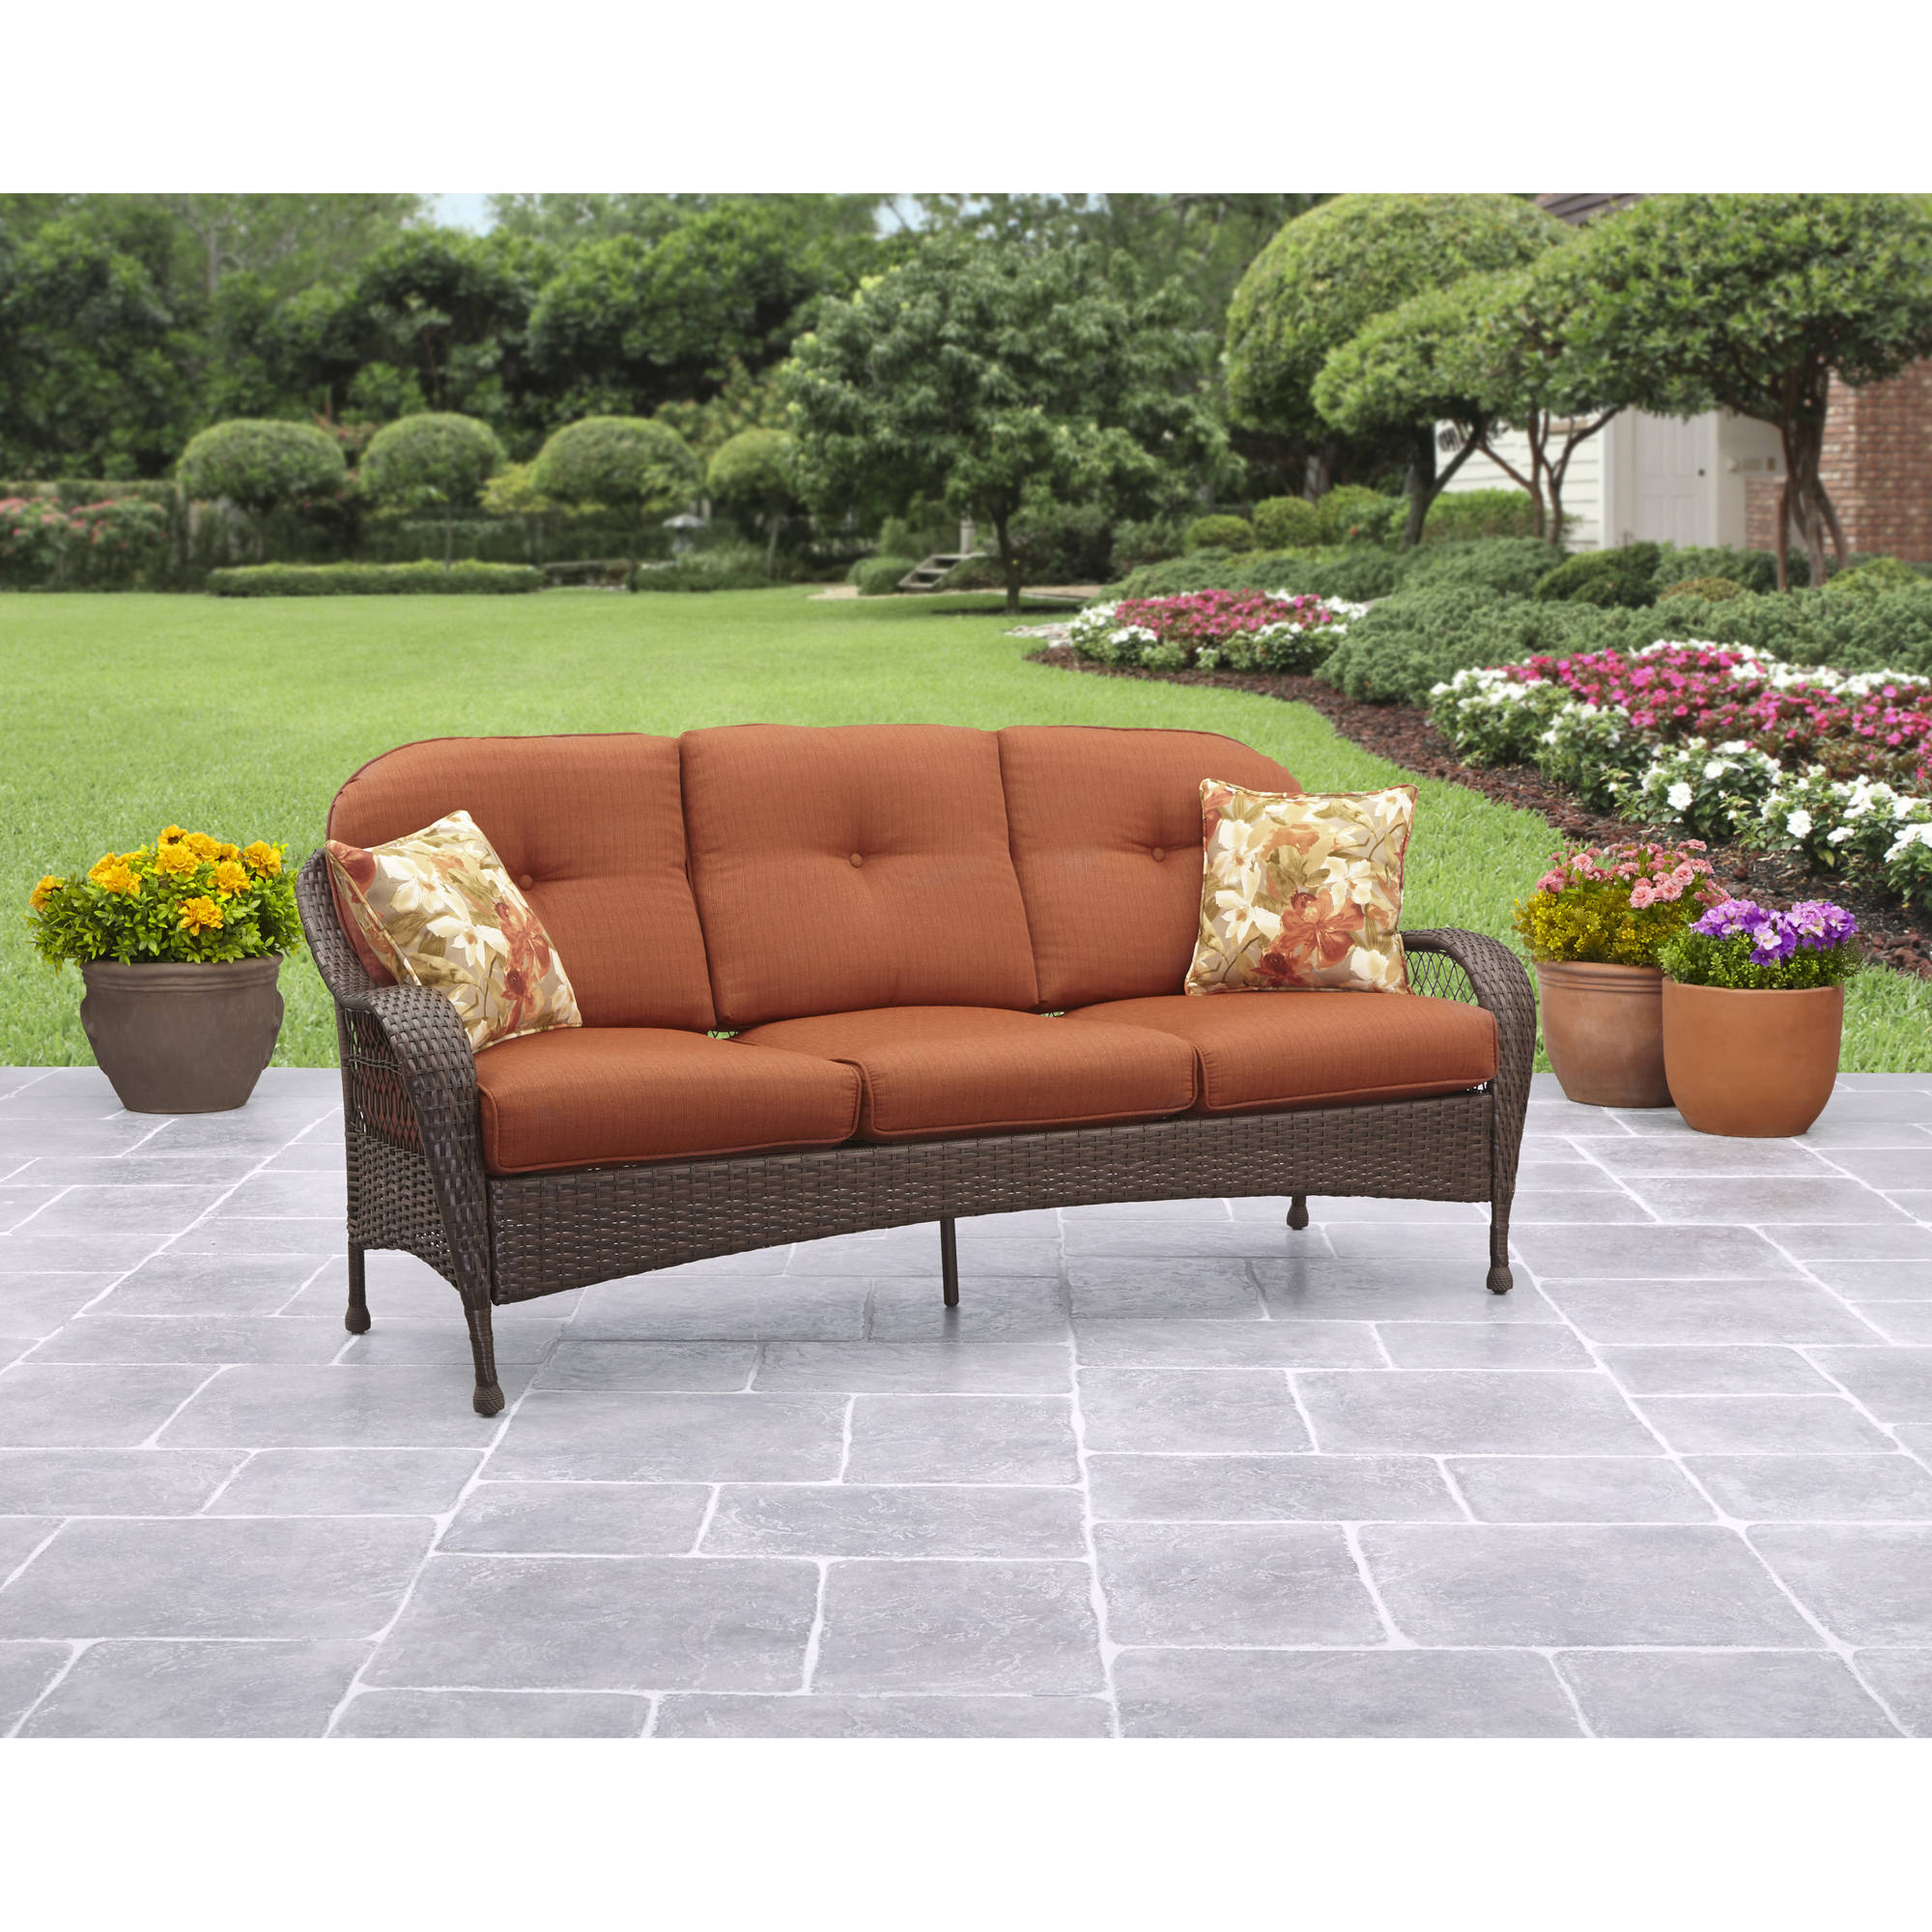 Garden Furniture Nj better homes and gardens patio furniture - walmart